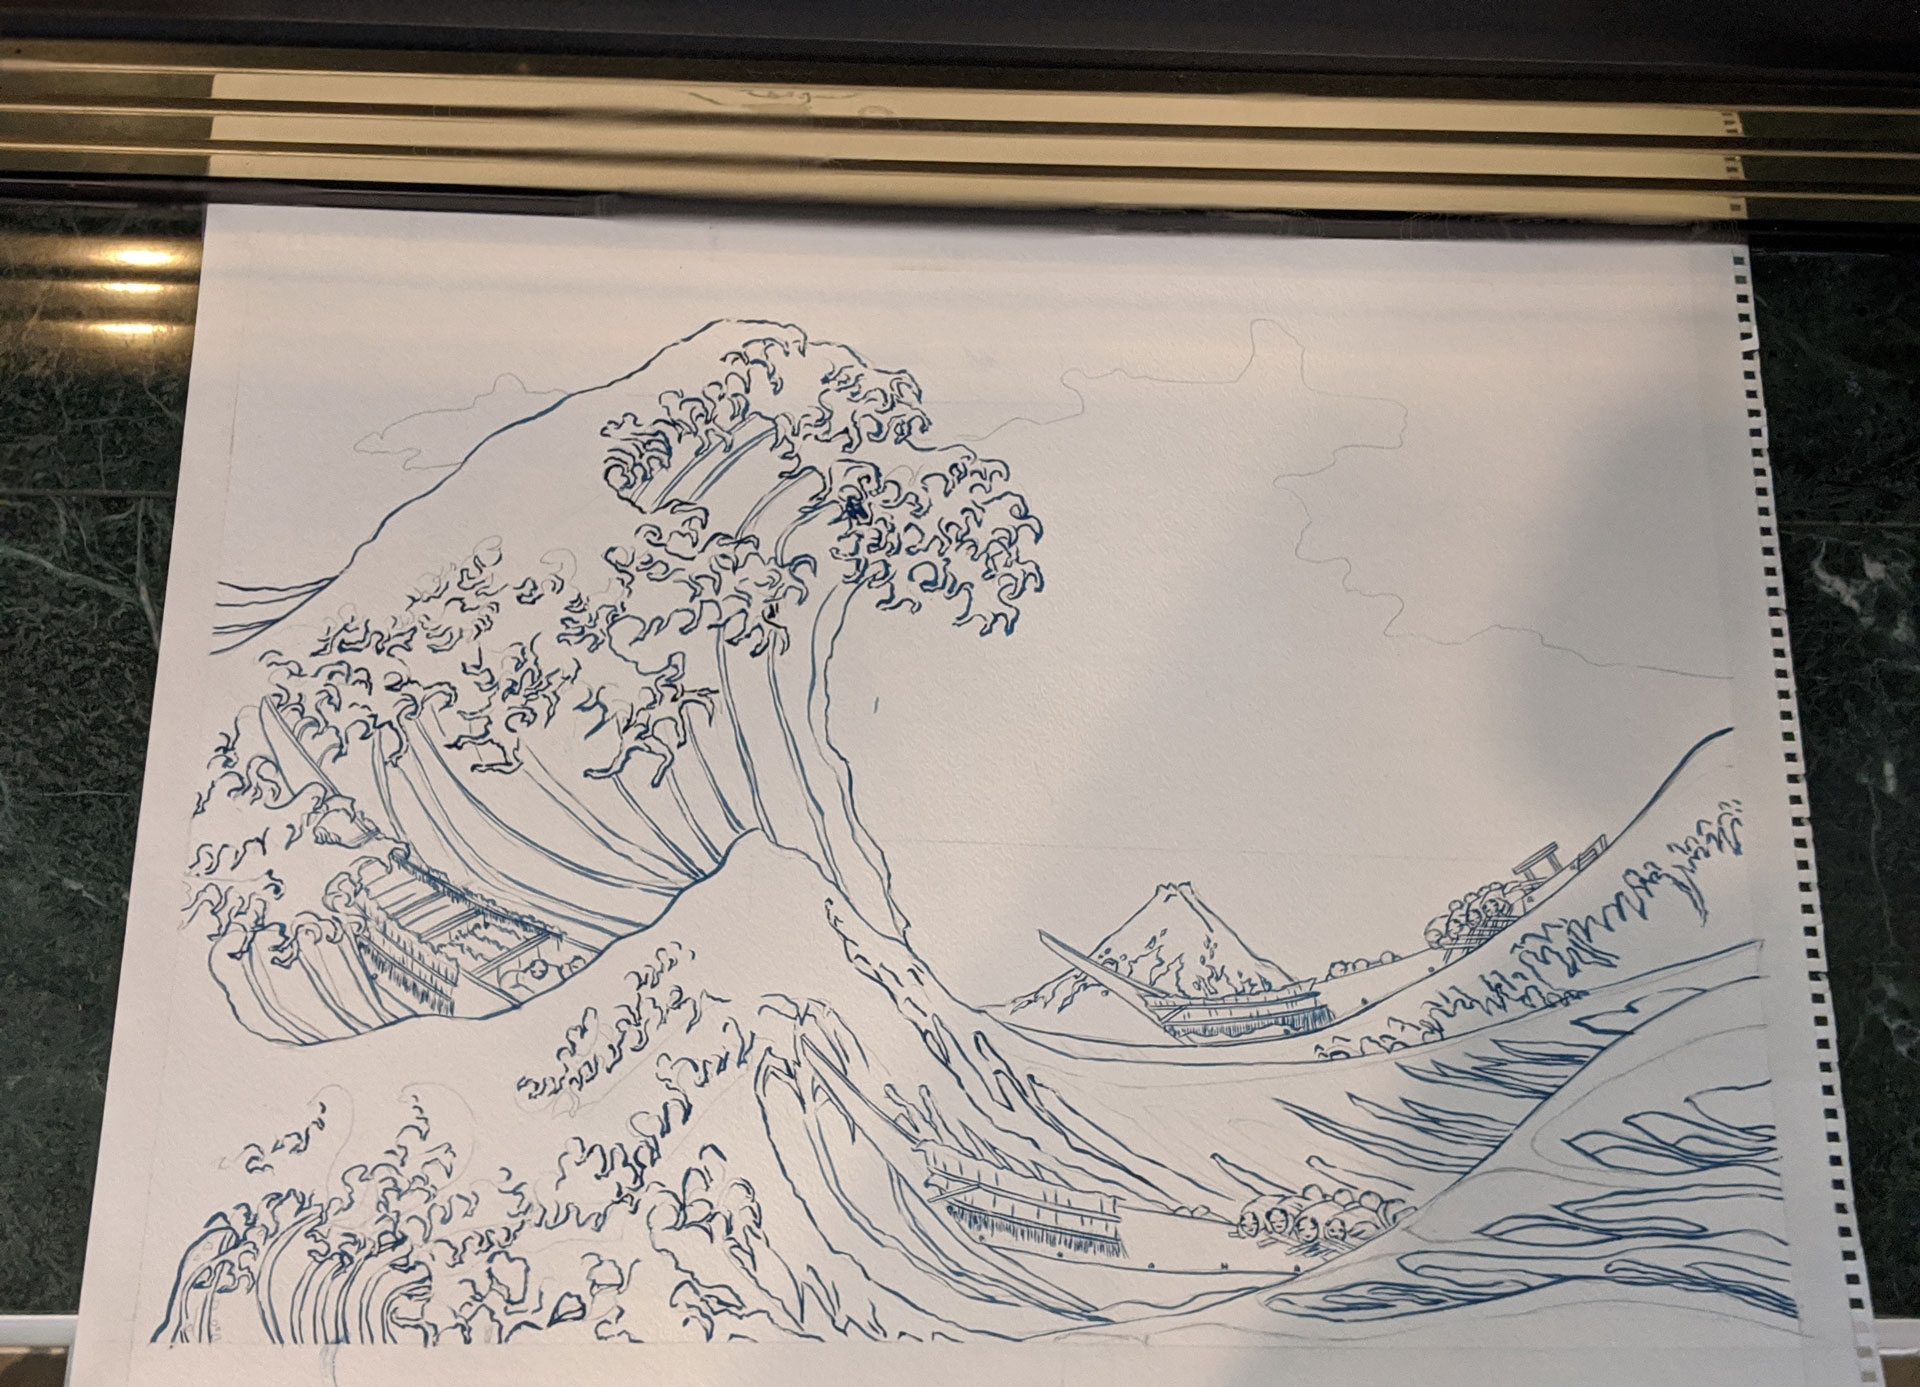 The Great Wave off Kanagawa Watercolor by Fan Stanbrough